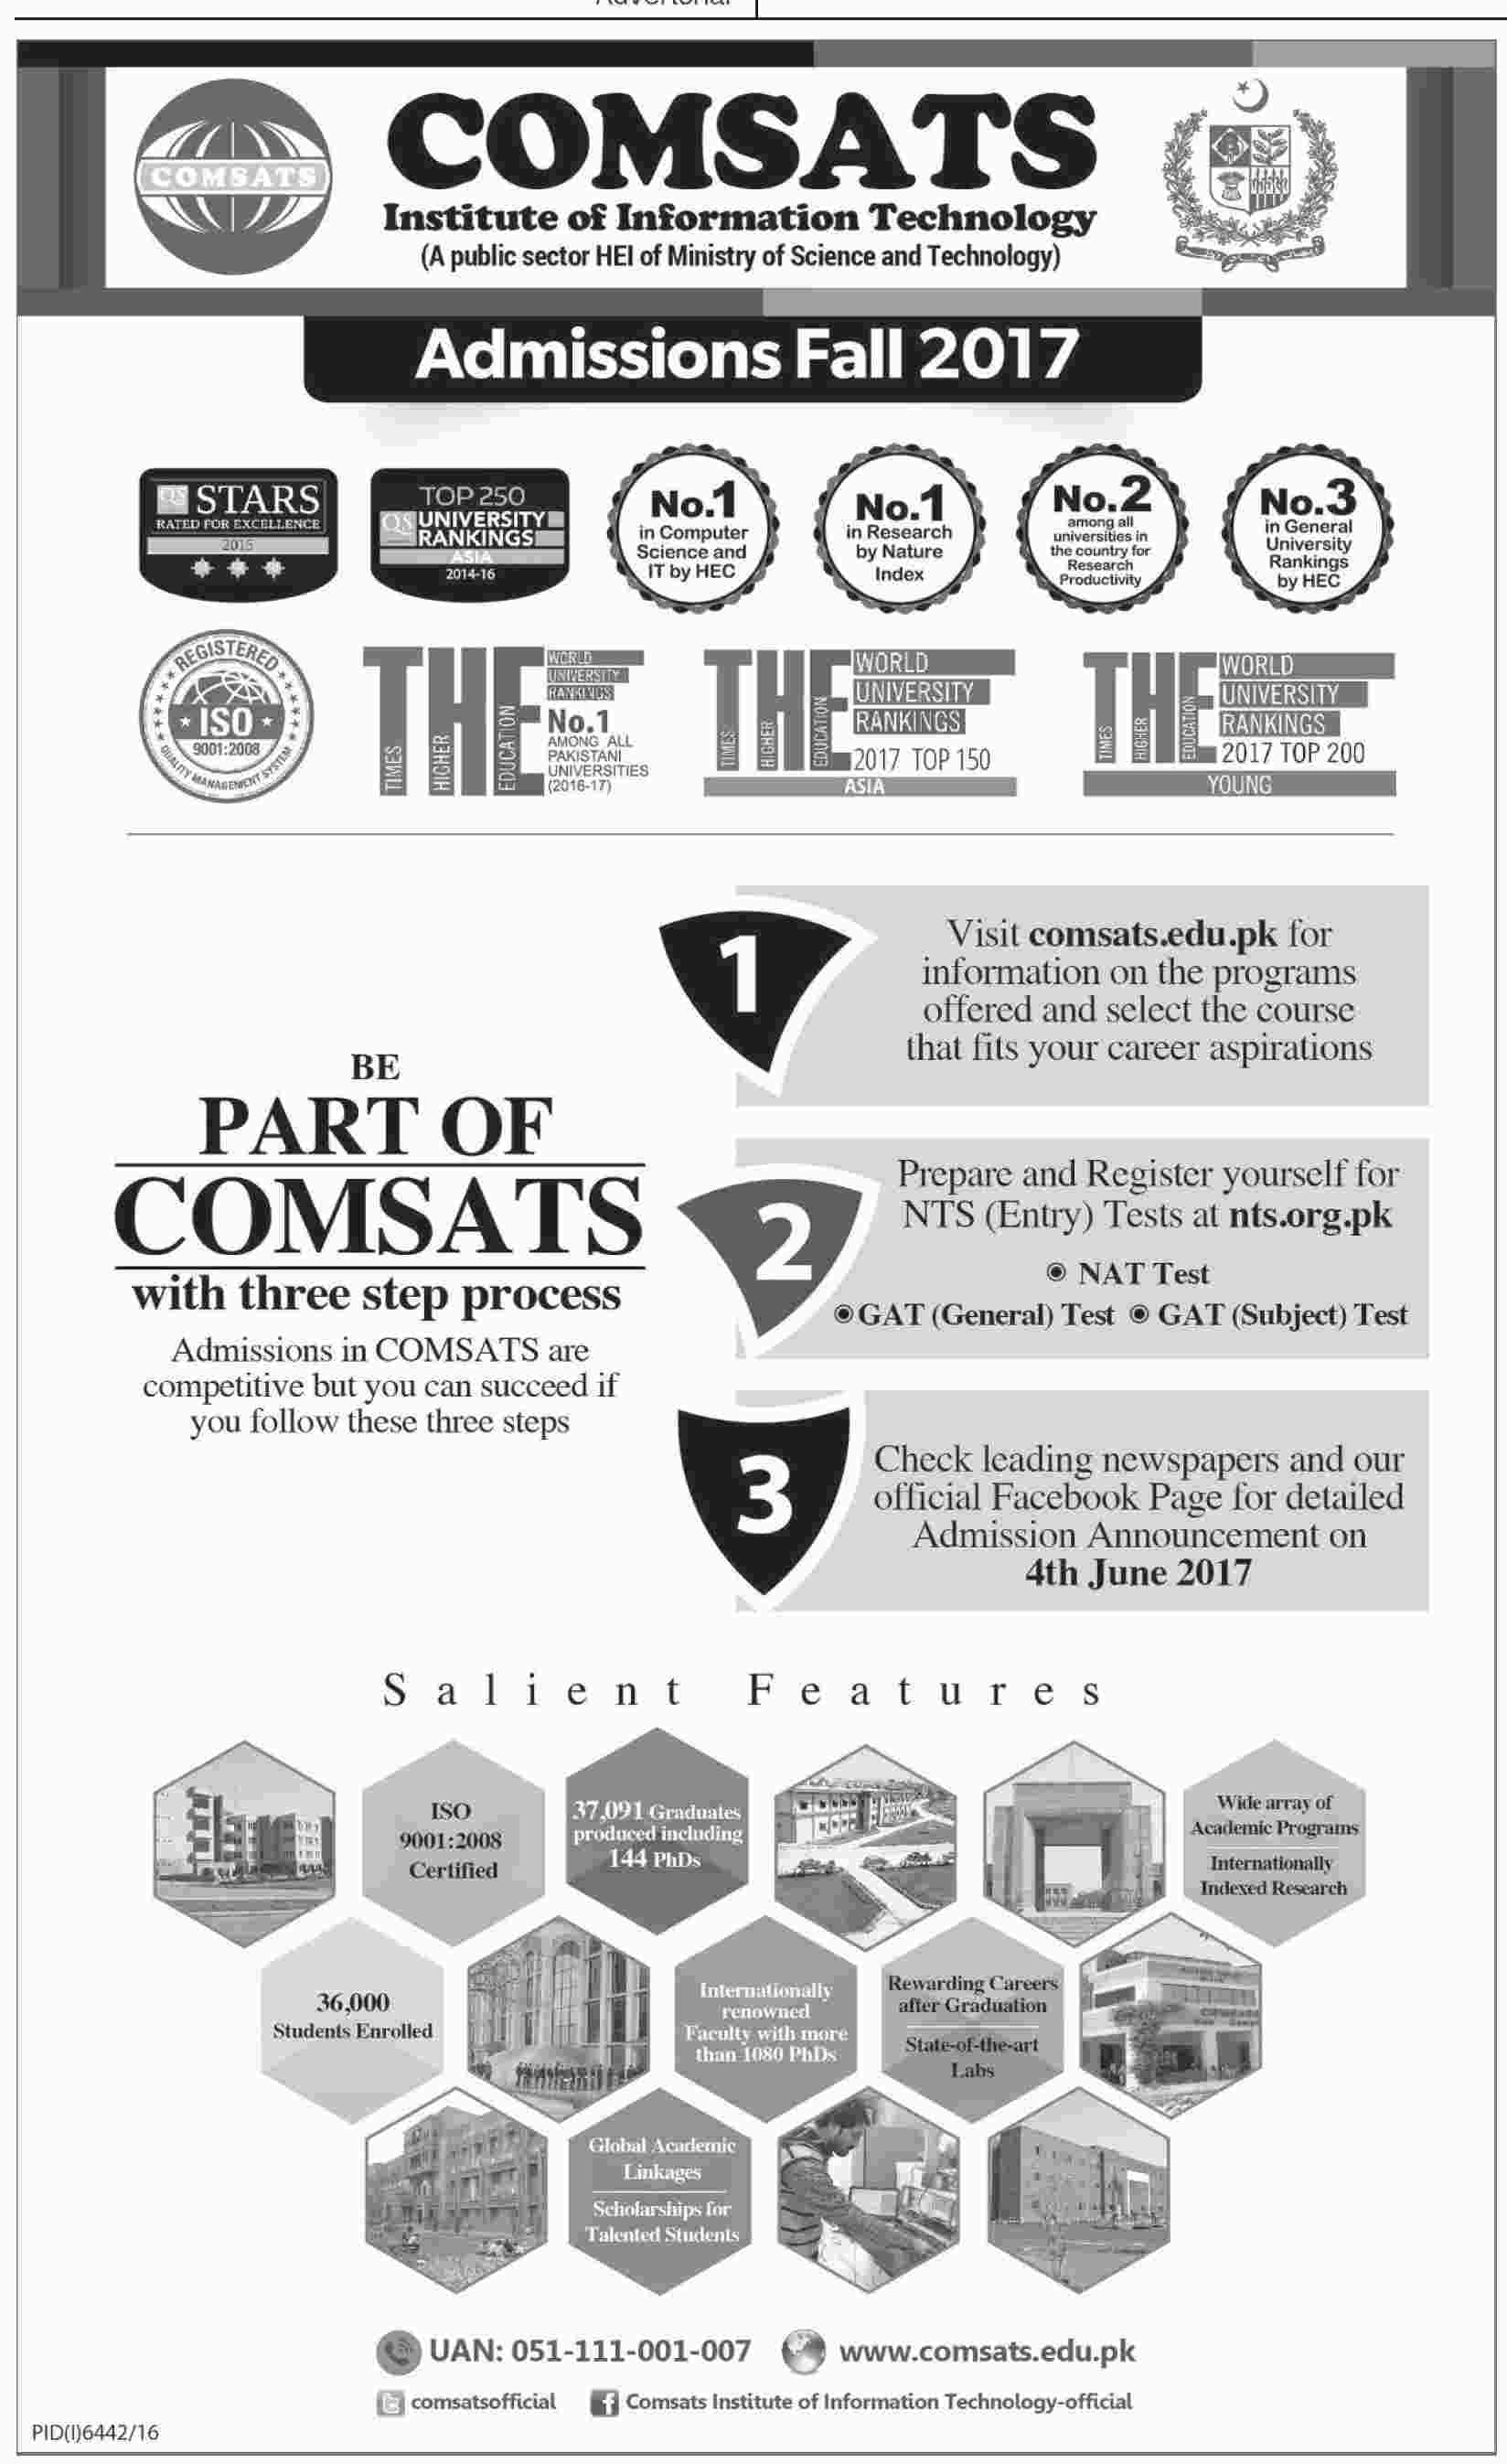 CIIT Comsats Institute Of Information Technology Admission